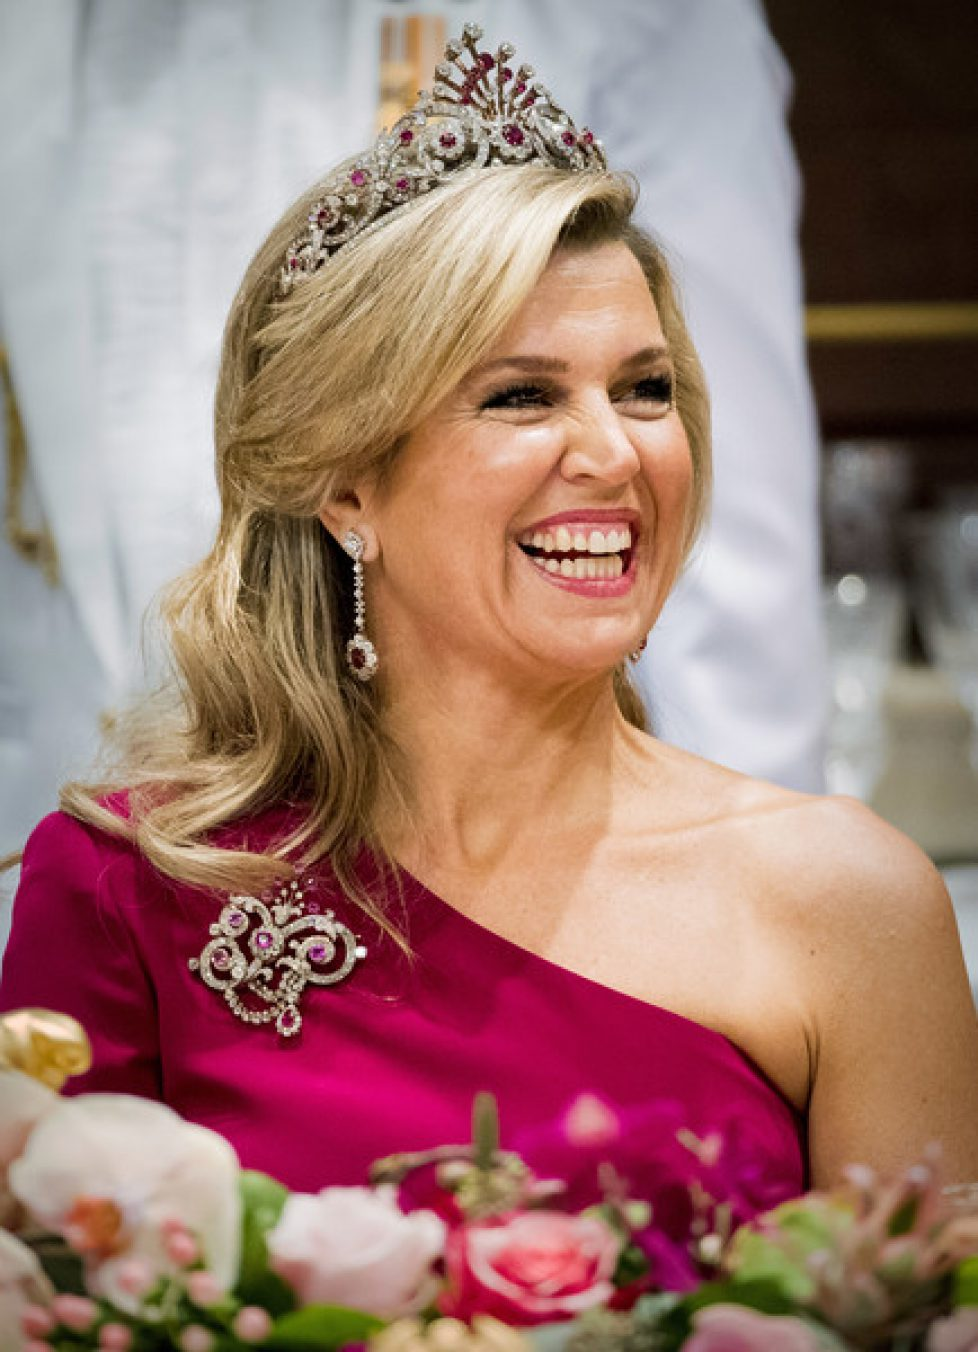 King+Willem+Alexander+Netherlands+Queen+Maxima+s3jjC7FK-7el